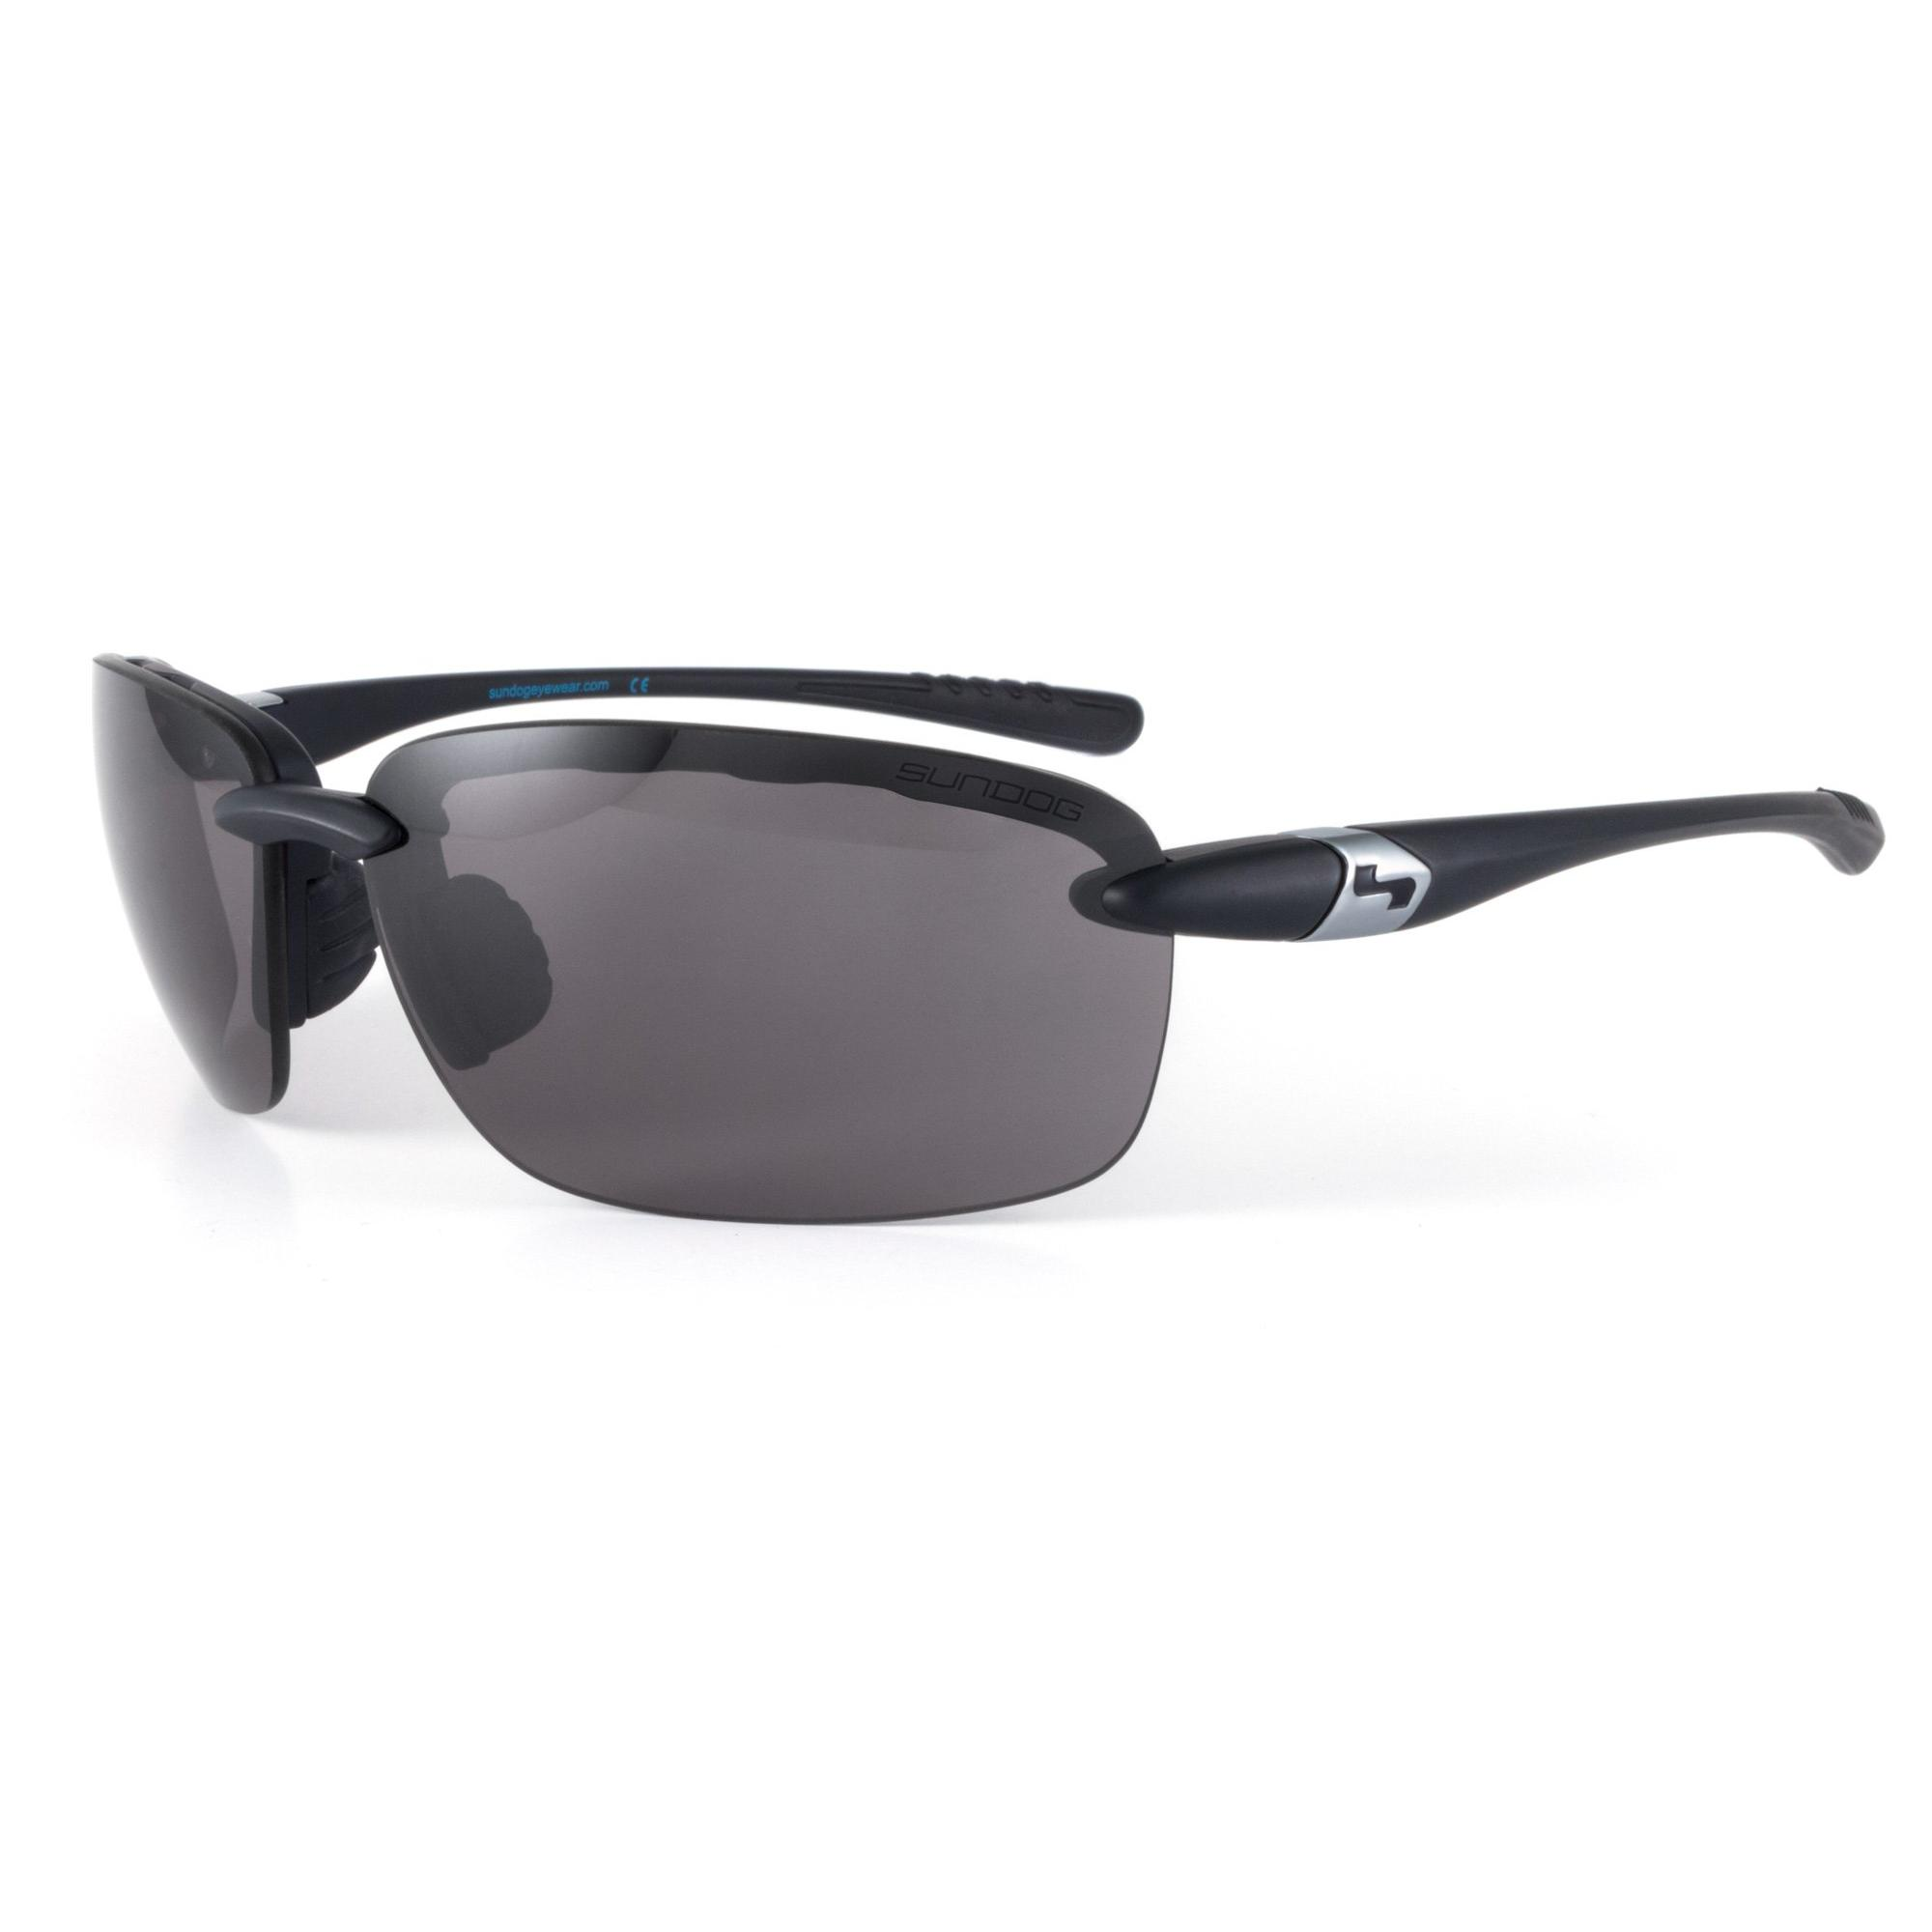 Men's Laser II TB Sunglasses - Black/Grey